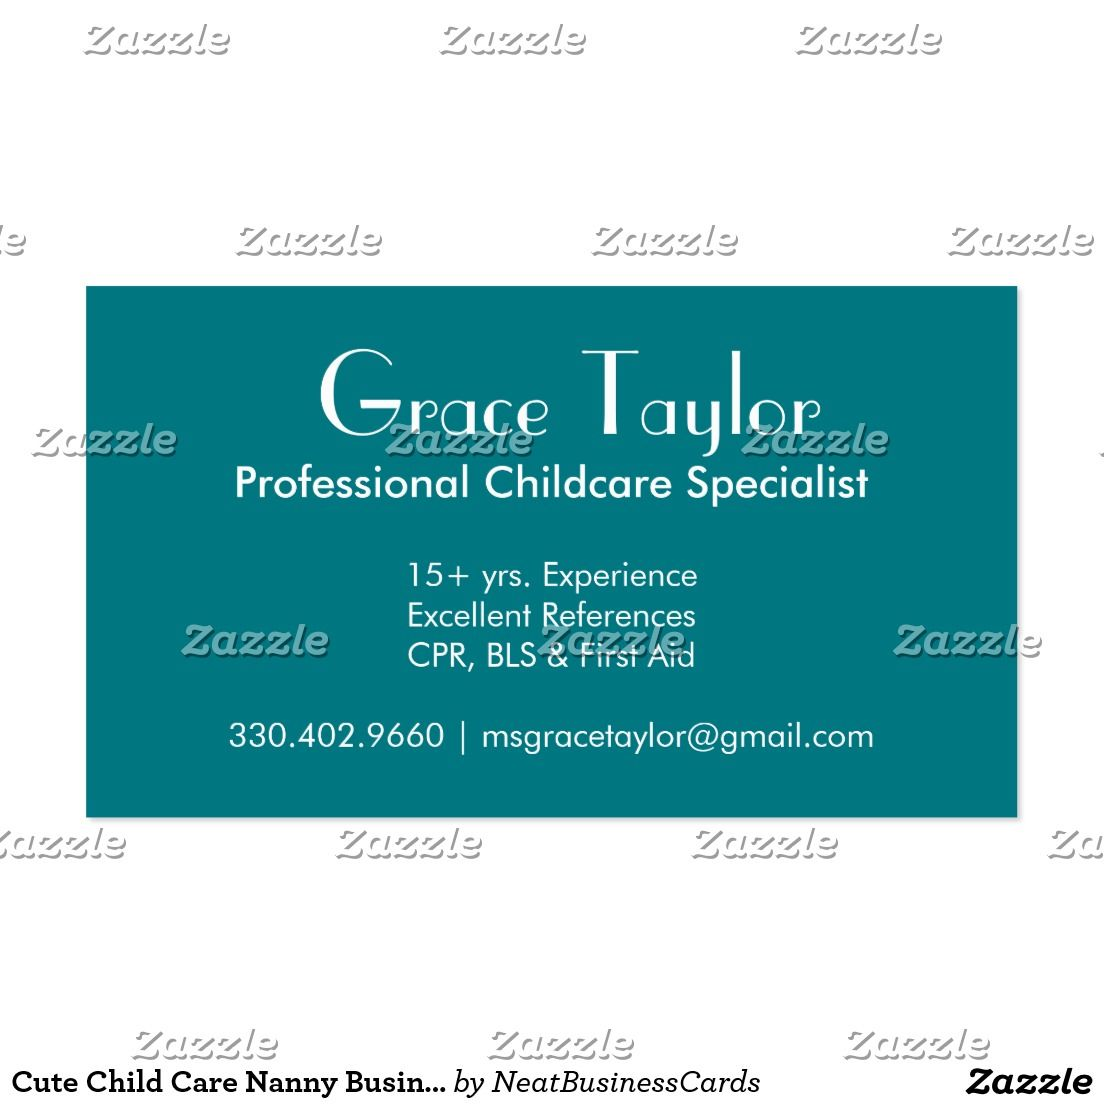 Cute Child Care Nanny Business Cards | Pinterest | Business cards ...